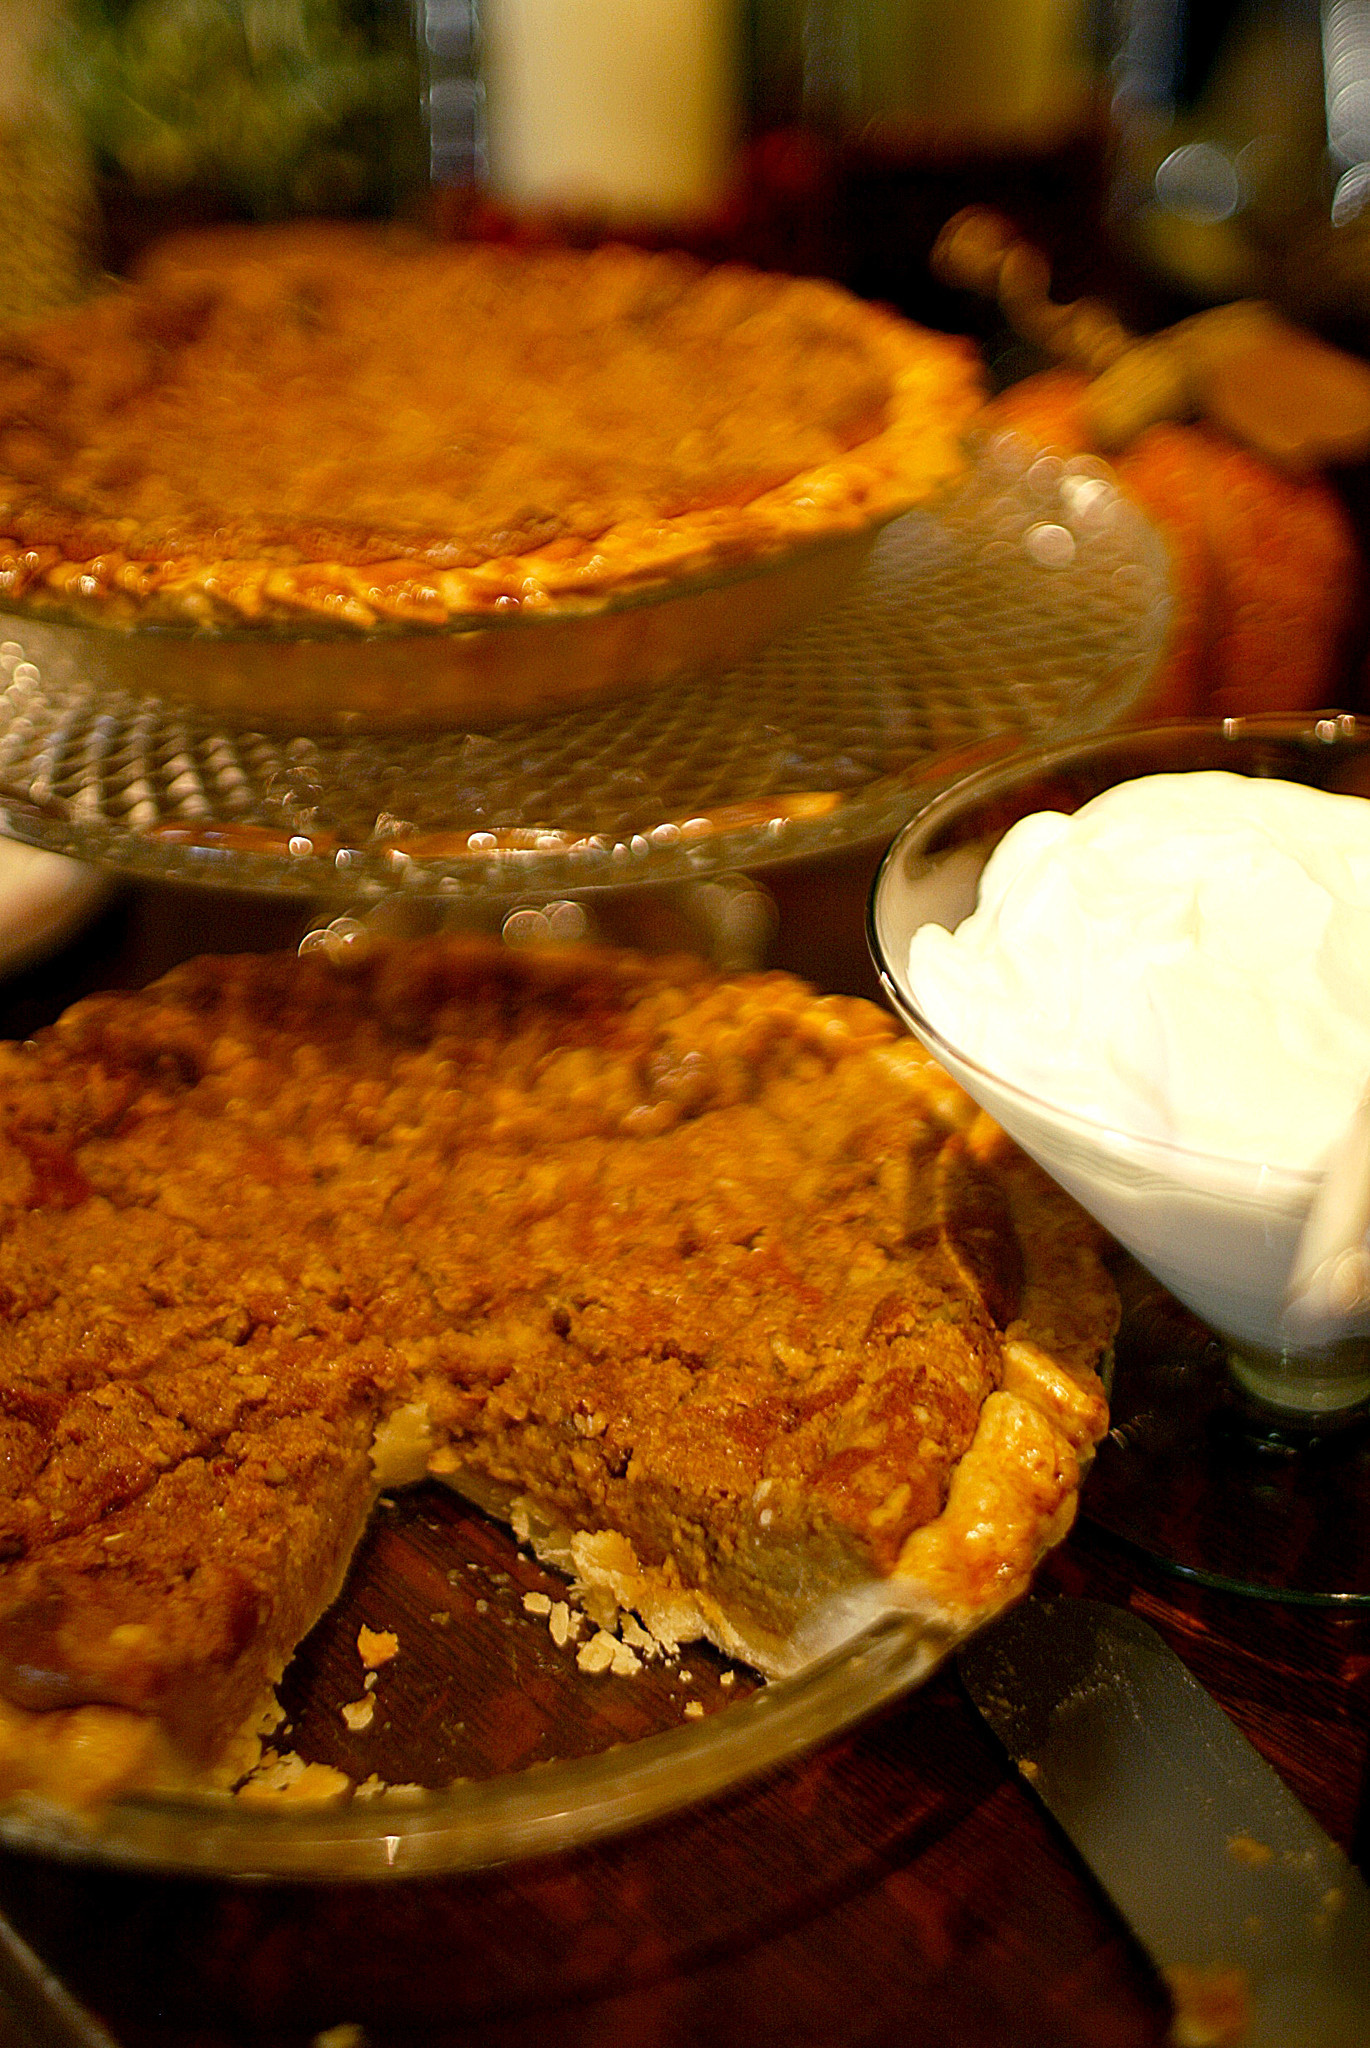 Photos: 97 great Thanksgiving recipes - Sweet potato pie with pecan streusel